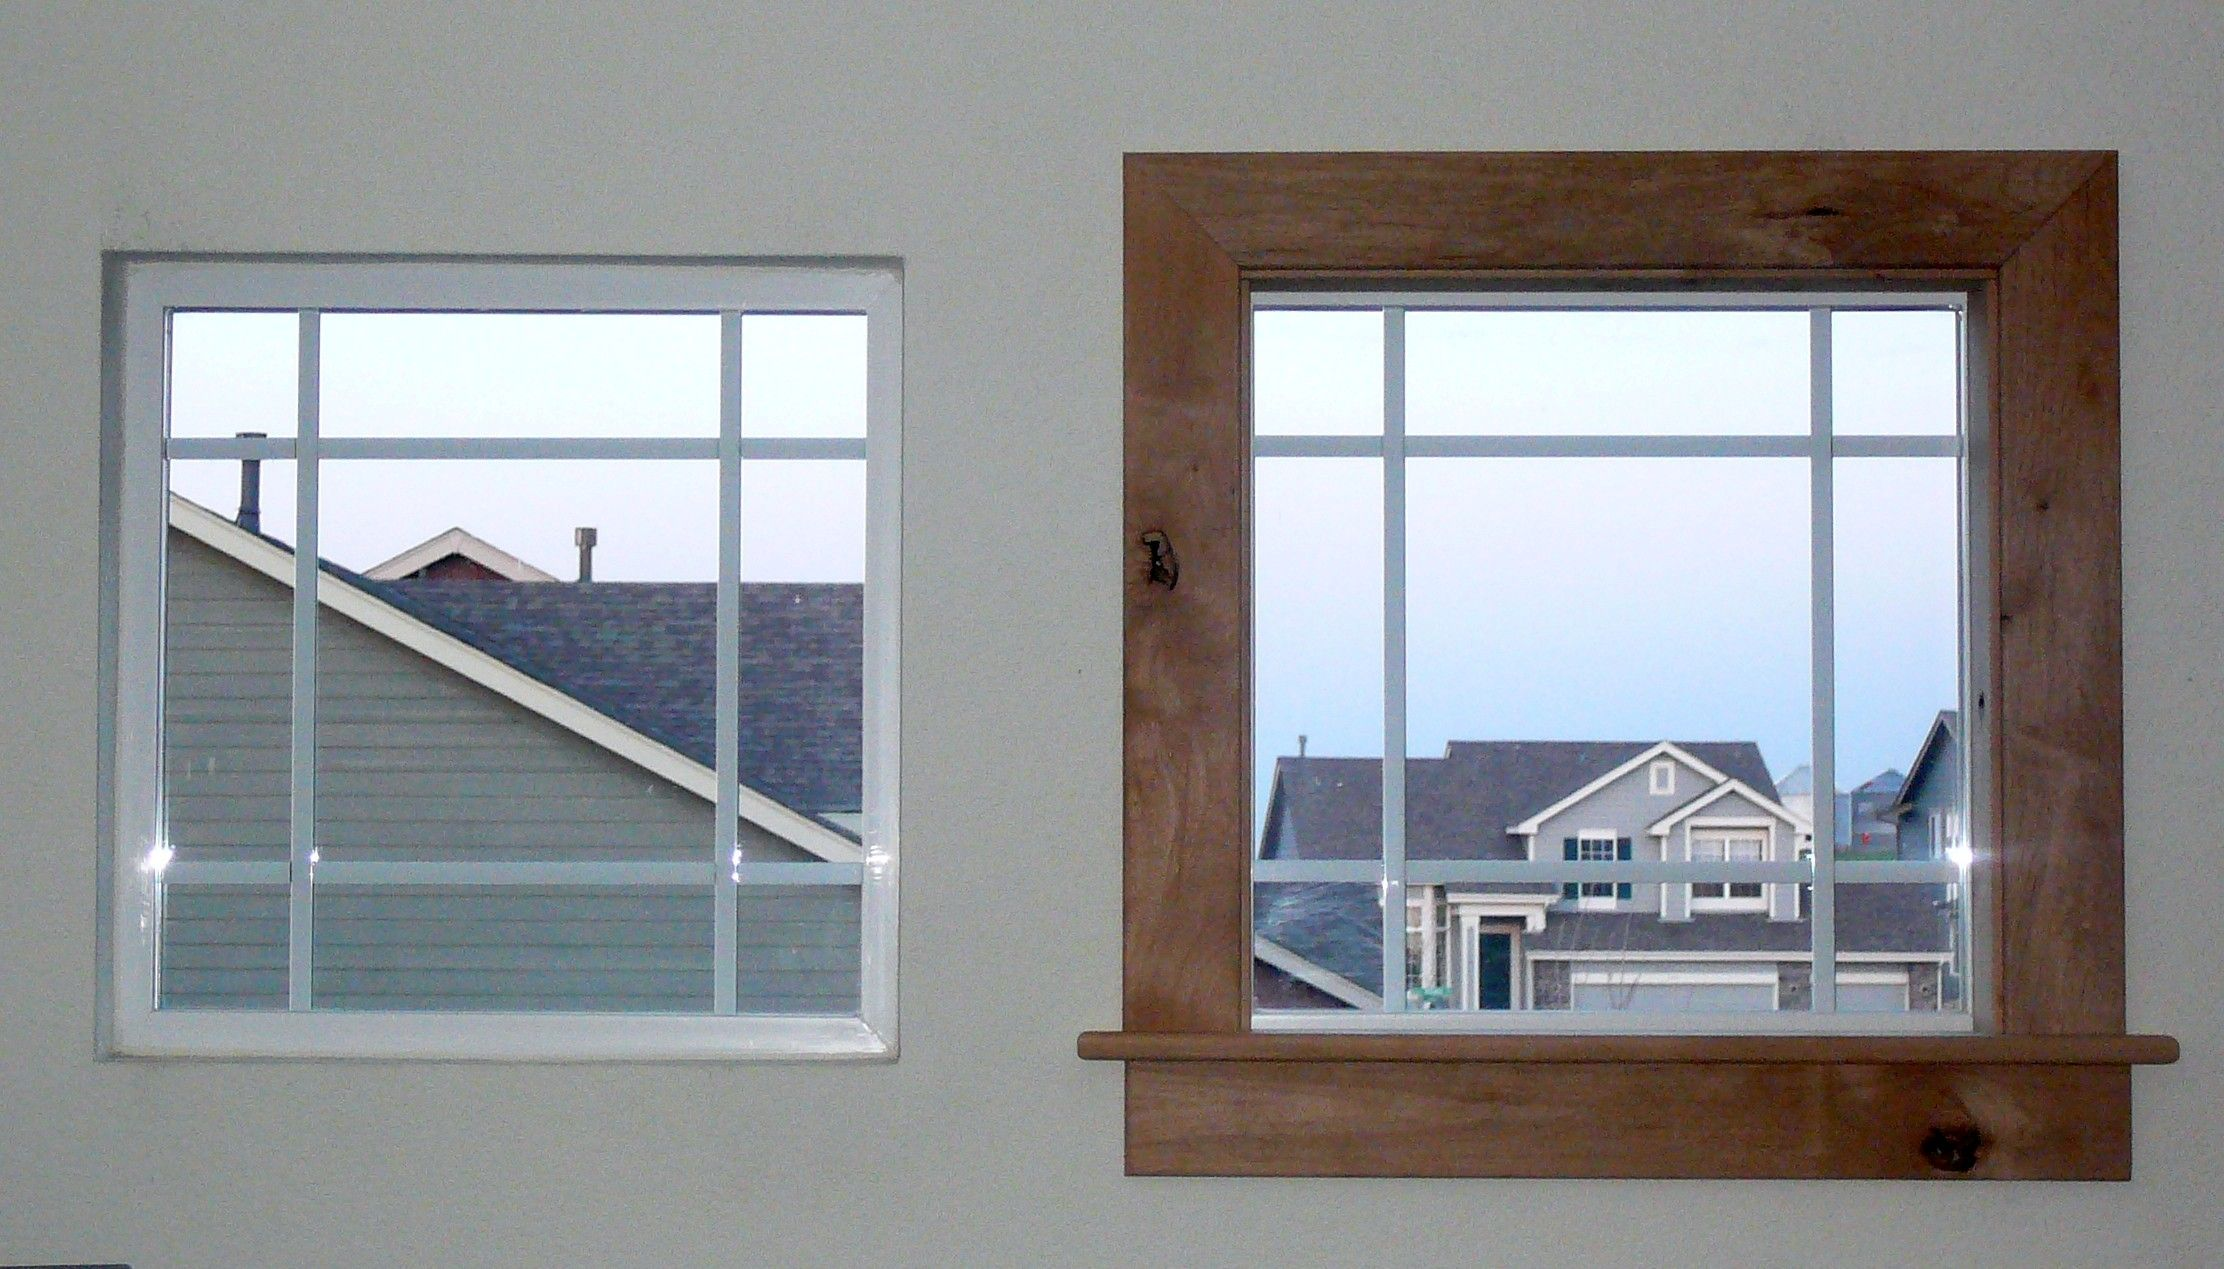 Diy modern easy craftsman window trim for the home - What type of wood for exterior trim ...